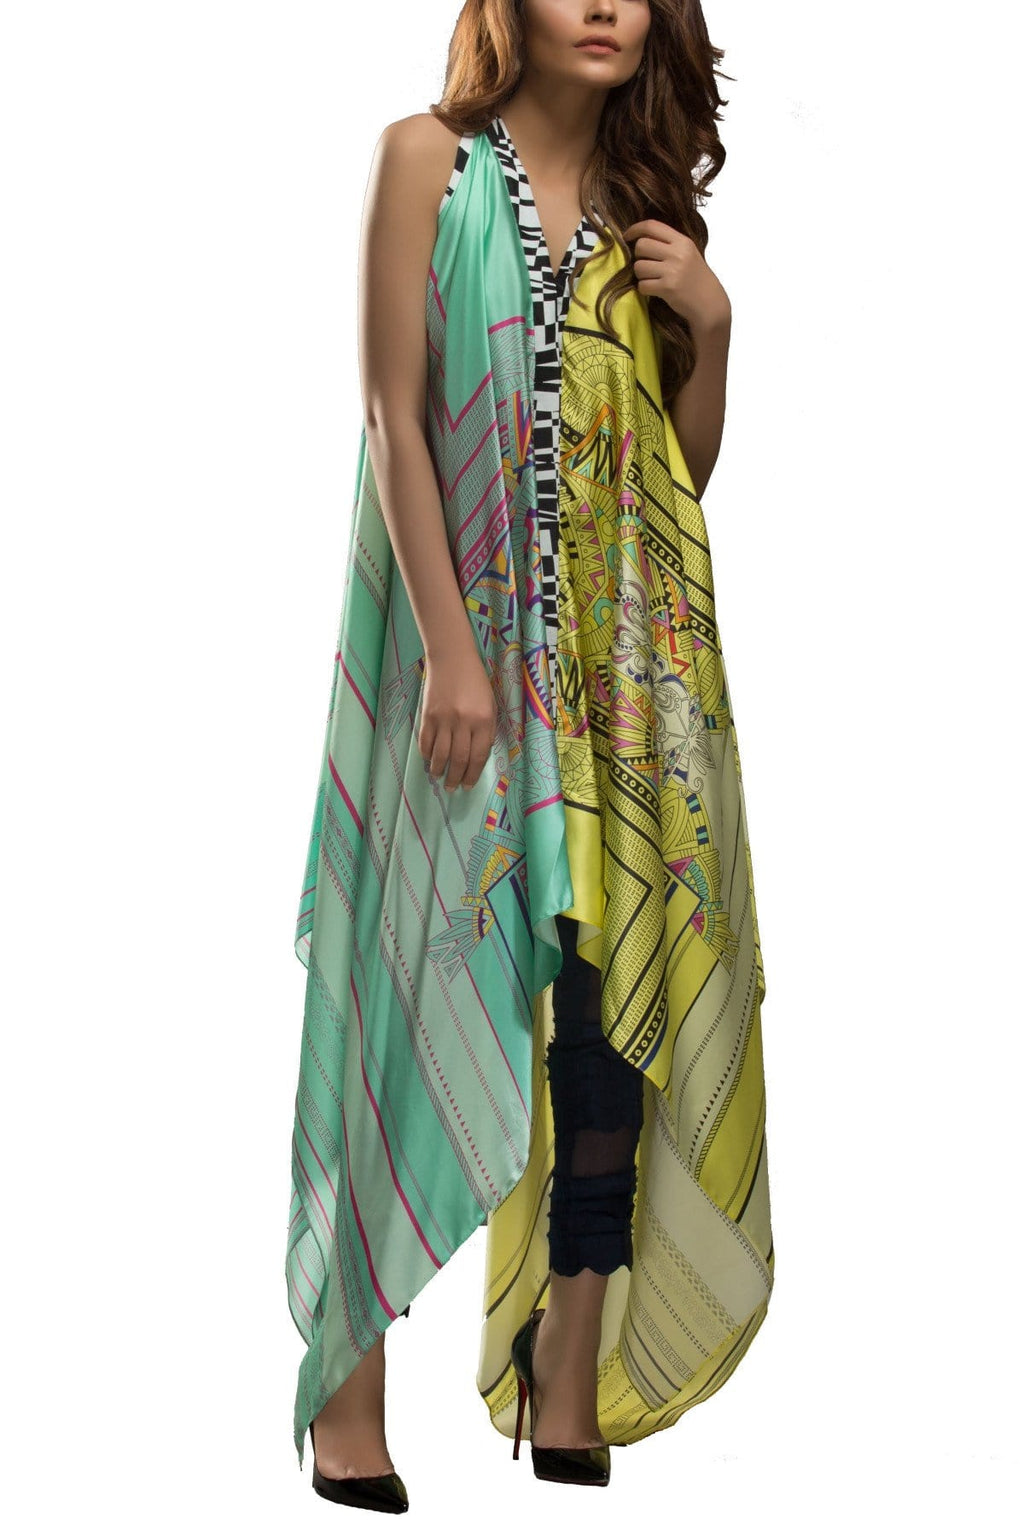 Sania Maskatiya - Digitally Printed Charmeuse Floor Length Shirt